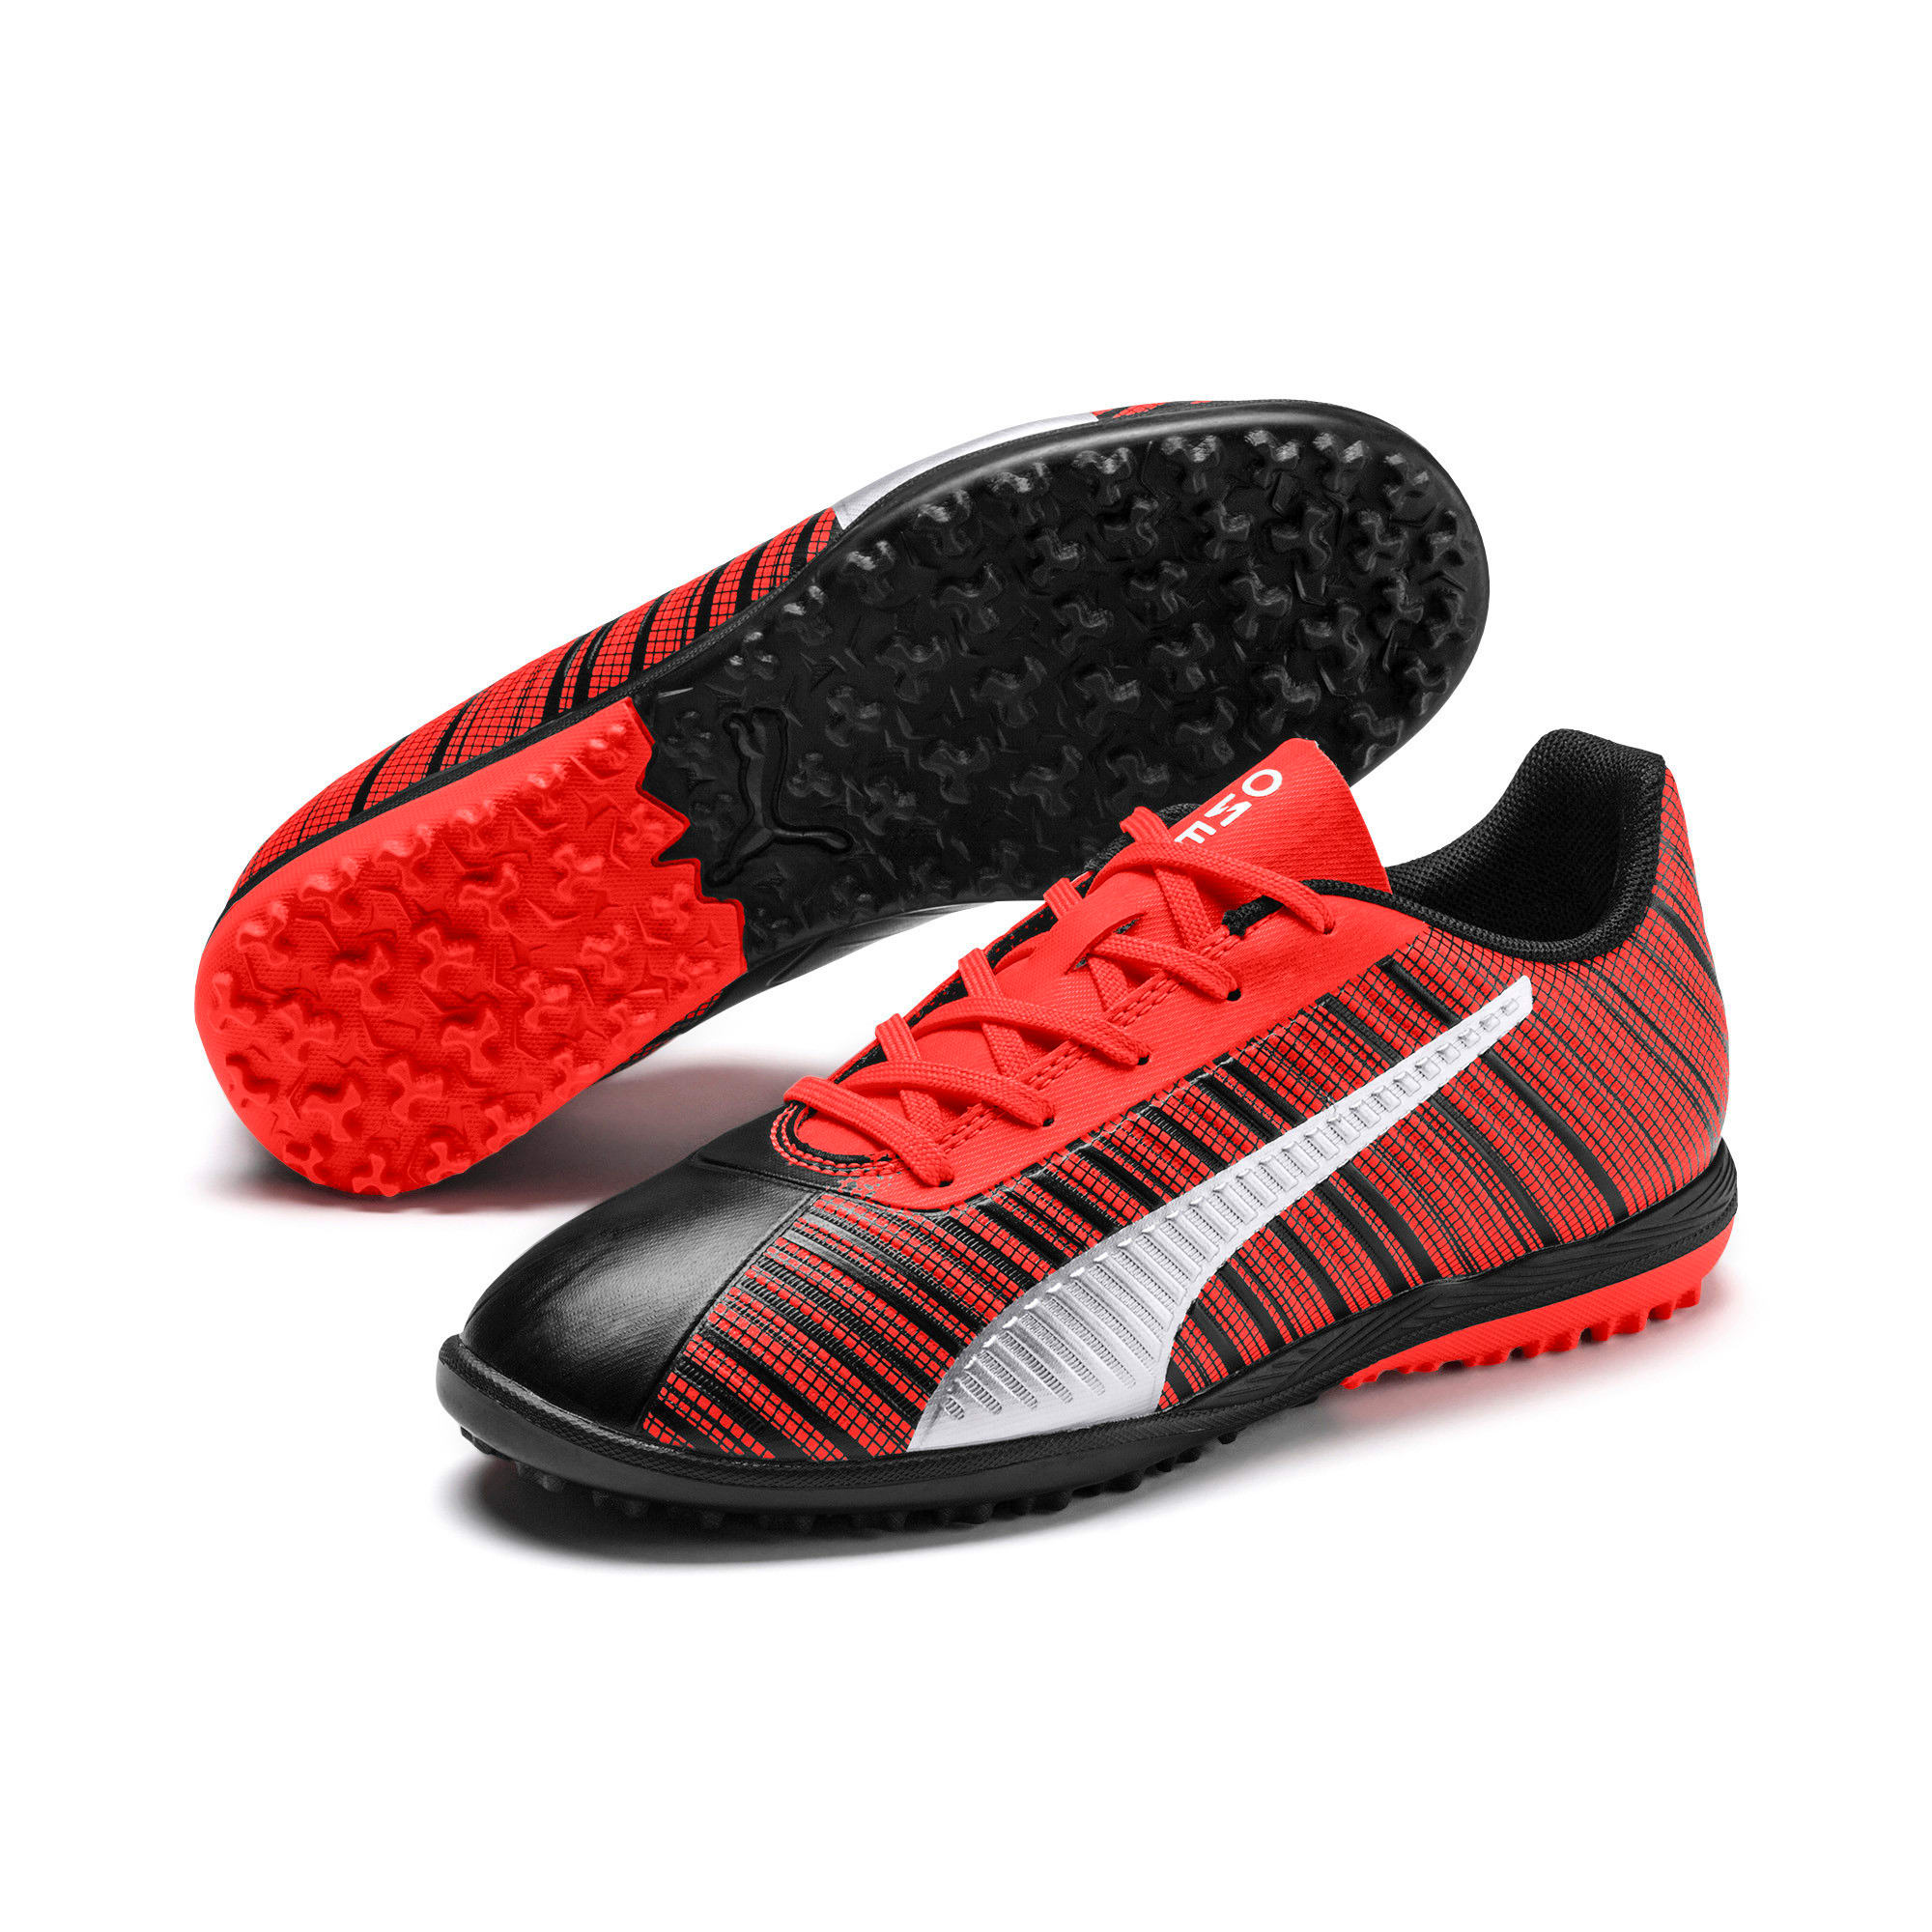 Thumbnail 2 of PUMA ONE 5.4 TT Soccer Shoes JR, Black-Nrgy Red-Aged Silver, medium